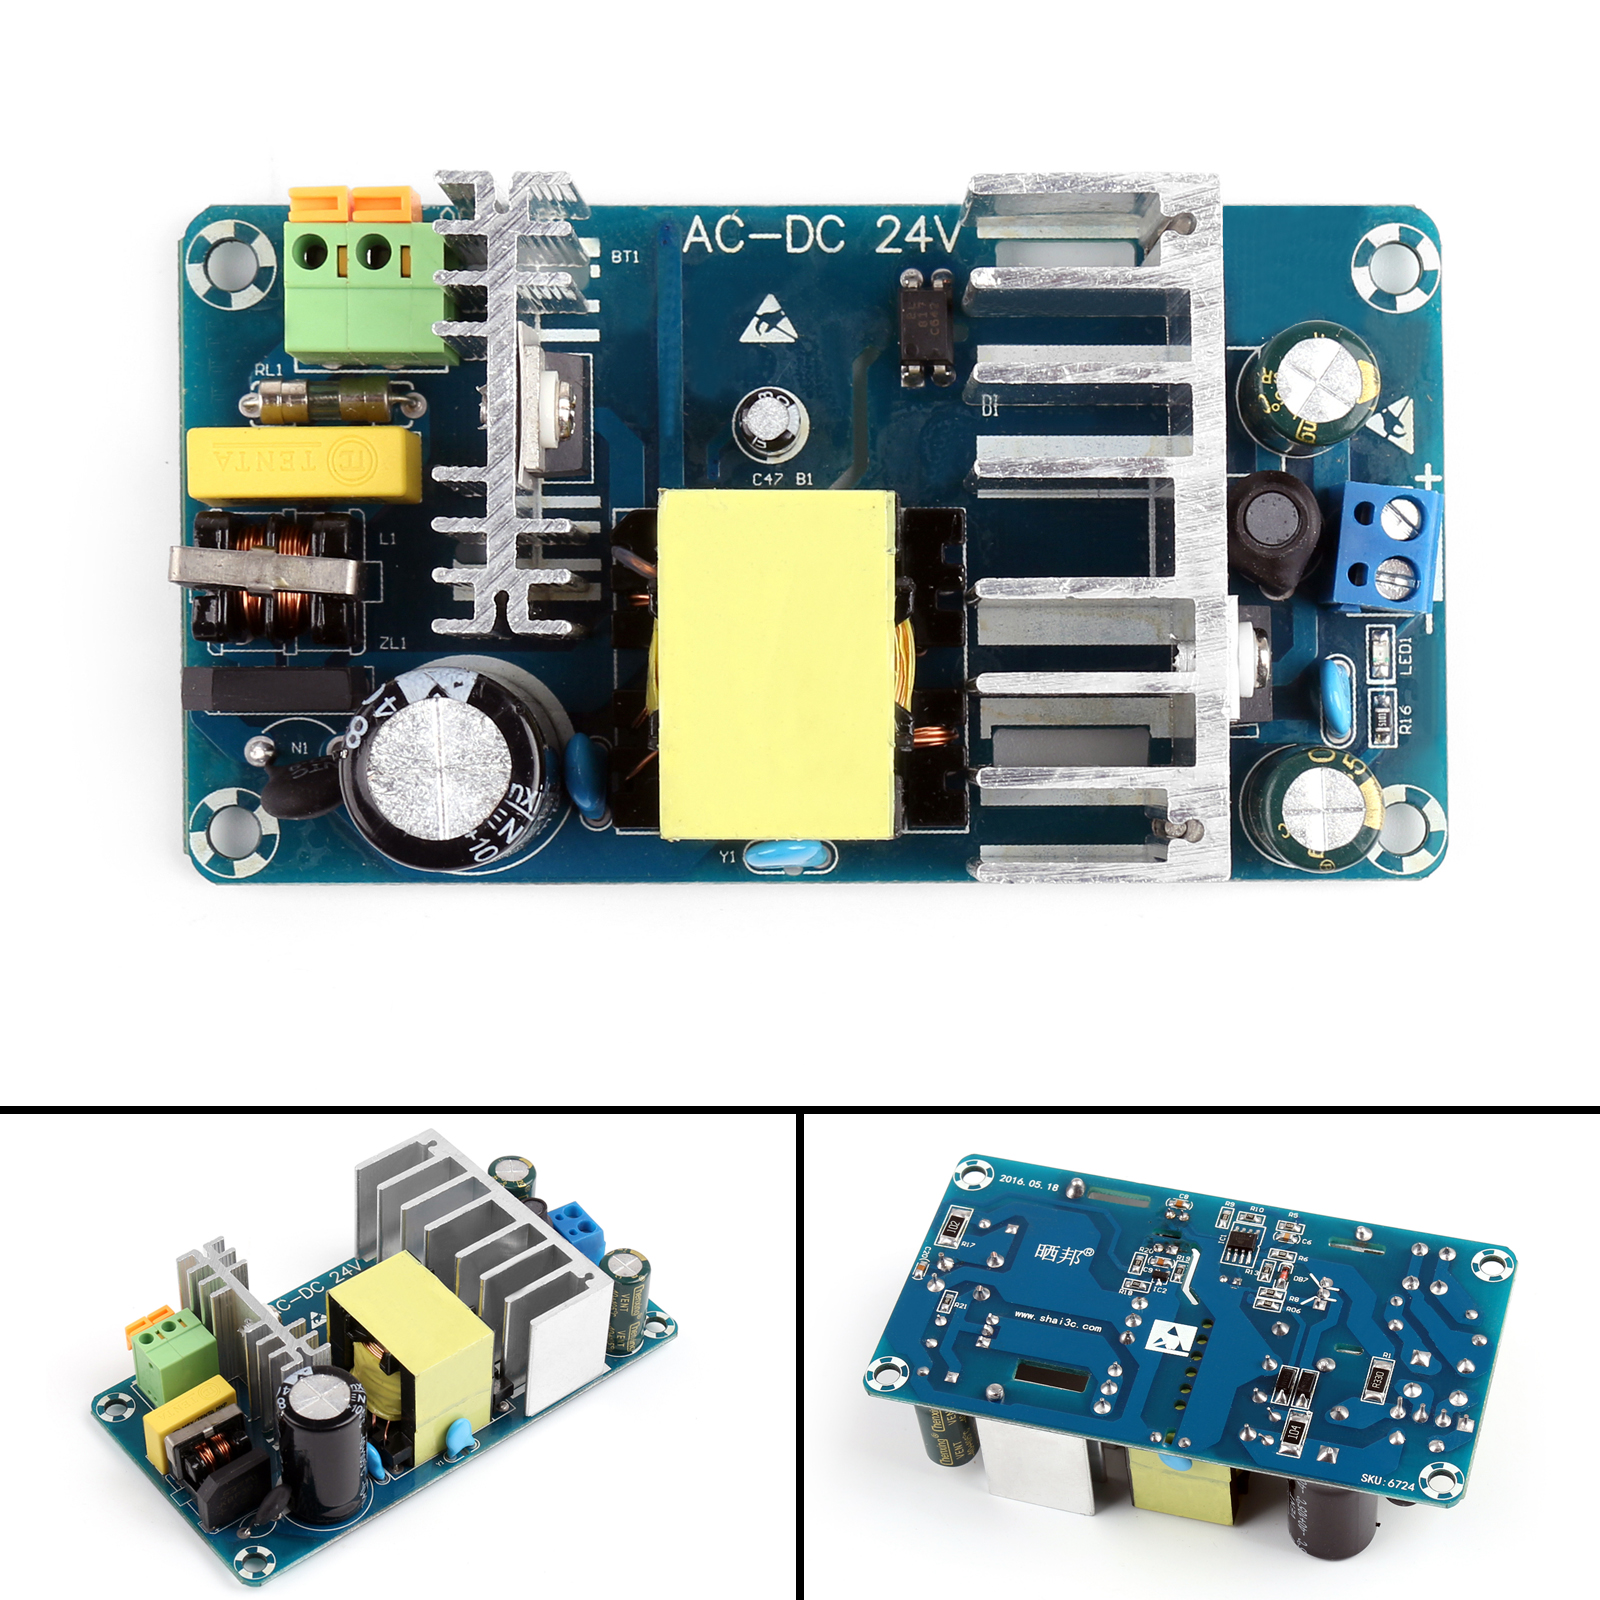 4pcs 4a To 6a 24v Switching Power Supply Board Ac Dc Module Circuit Smps Tablet Type 2 Size 106mm X 57mm 3 Model Xk 2412 24 4 Protection Overvoltage Overcurrent